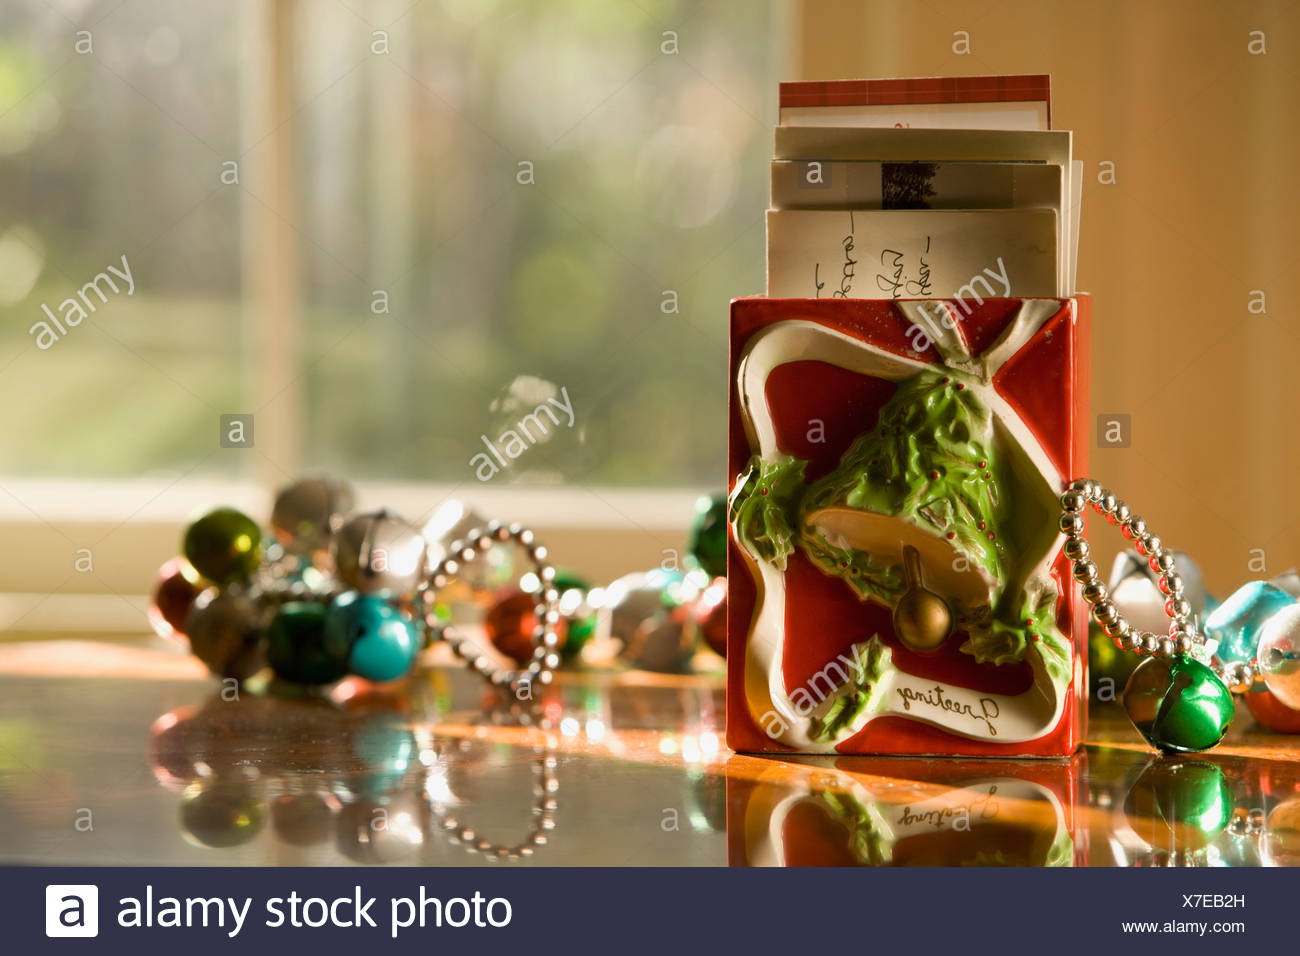 Christmas Decorations On Table Stock Photo 279984505 Alamy